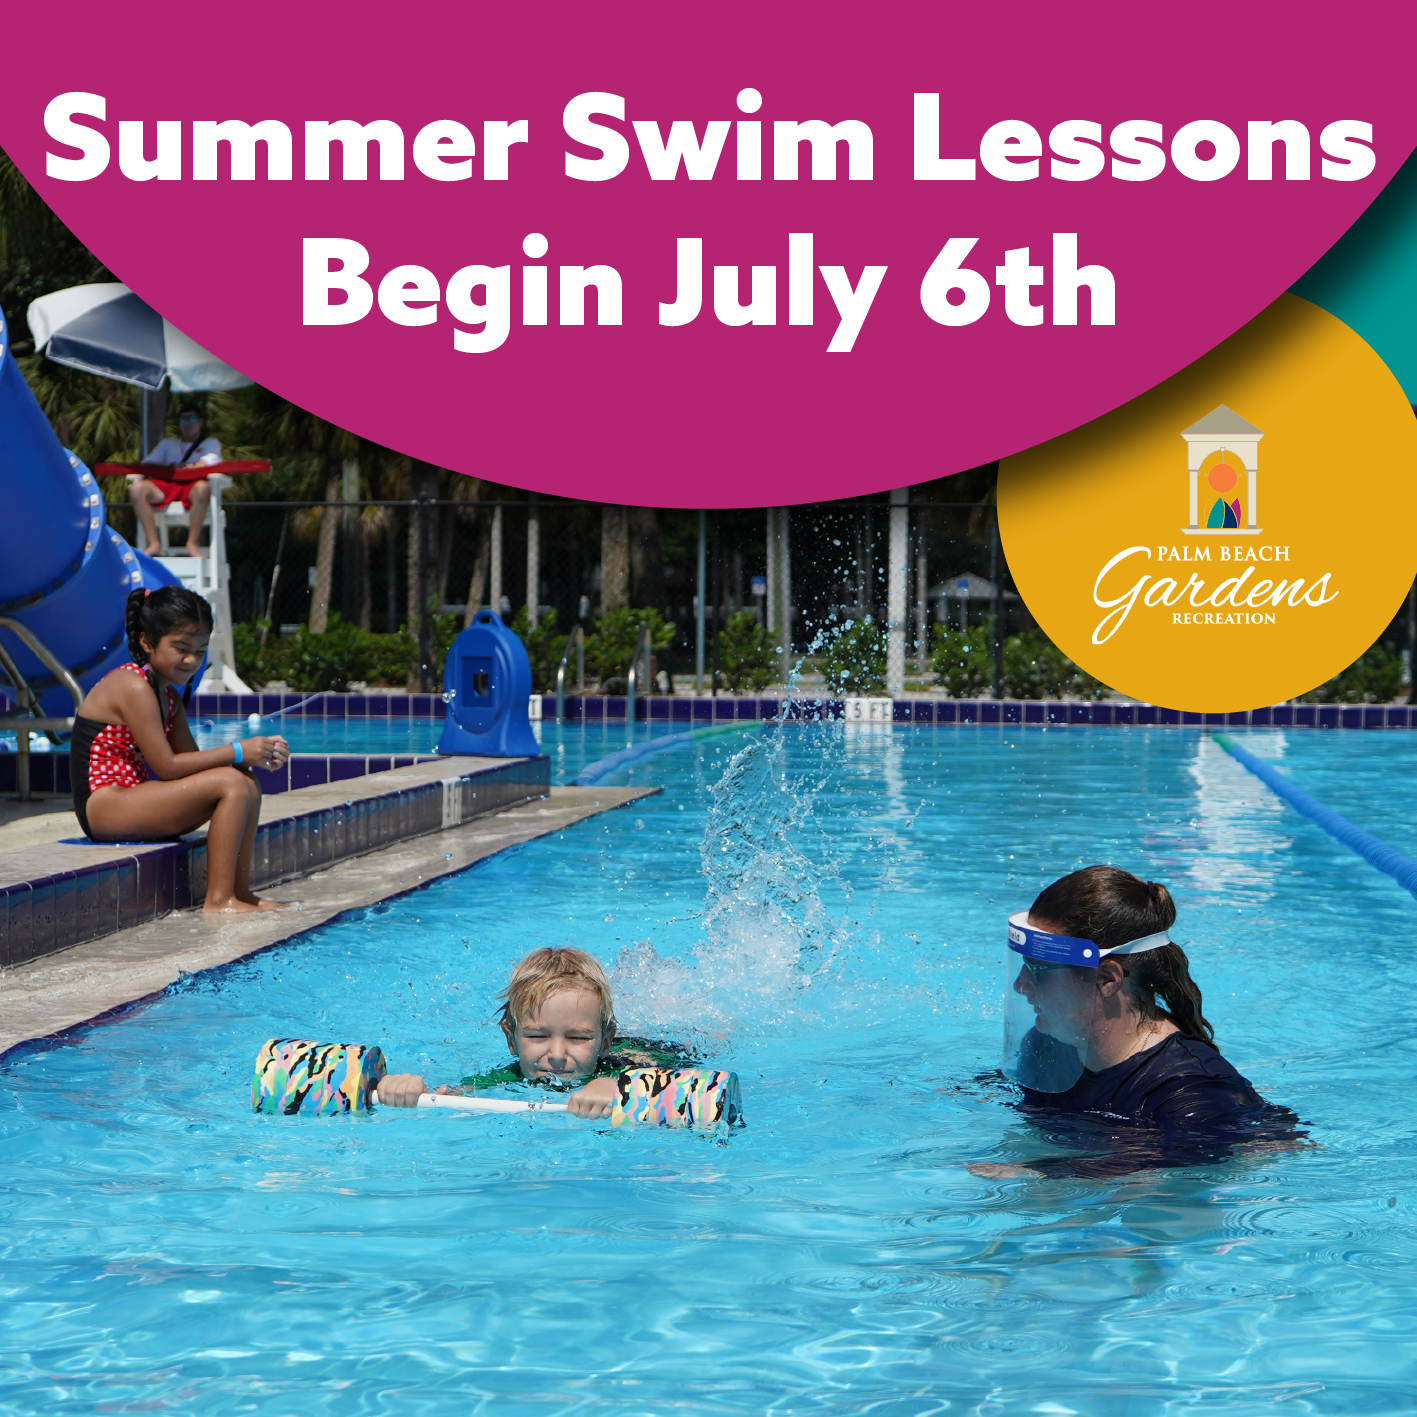 Summer Swim Lessons Begin July 6th!